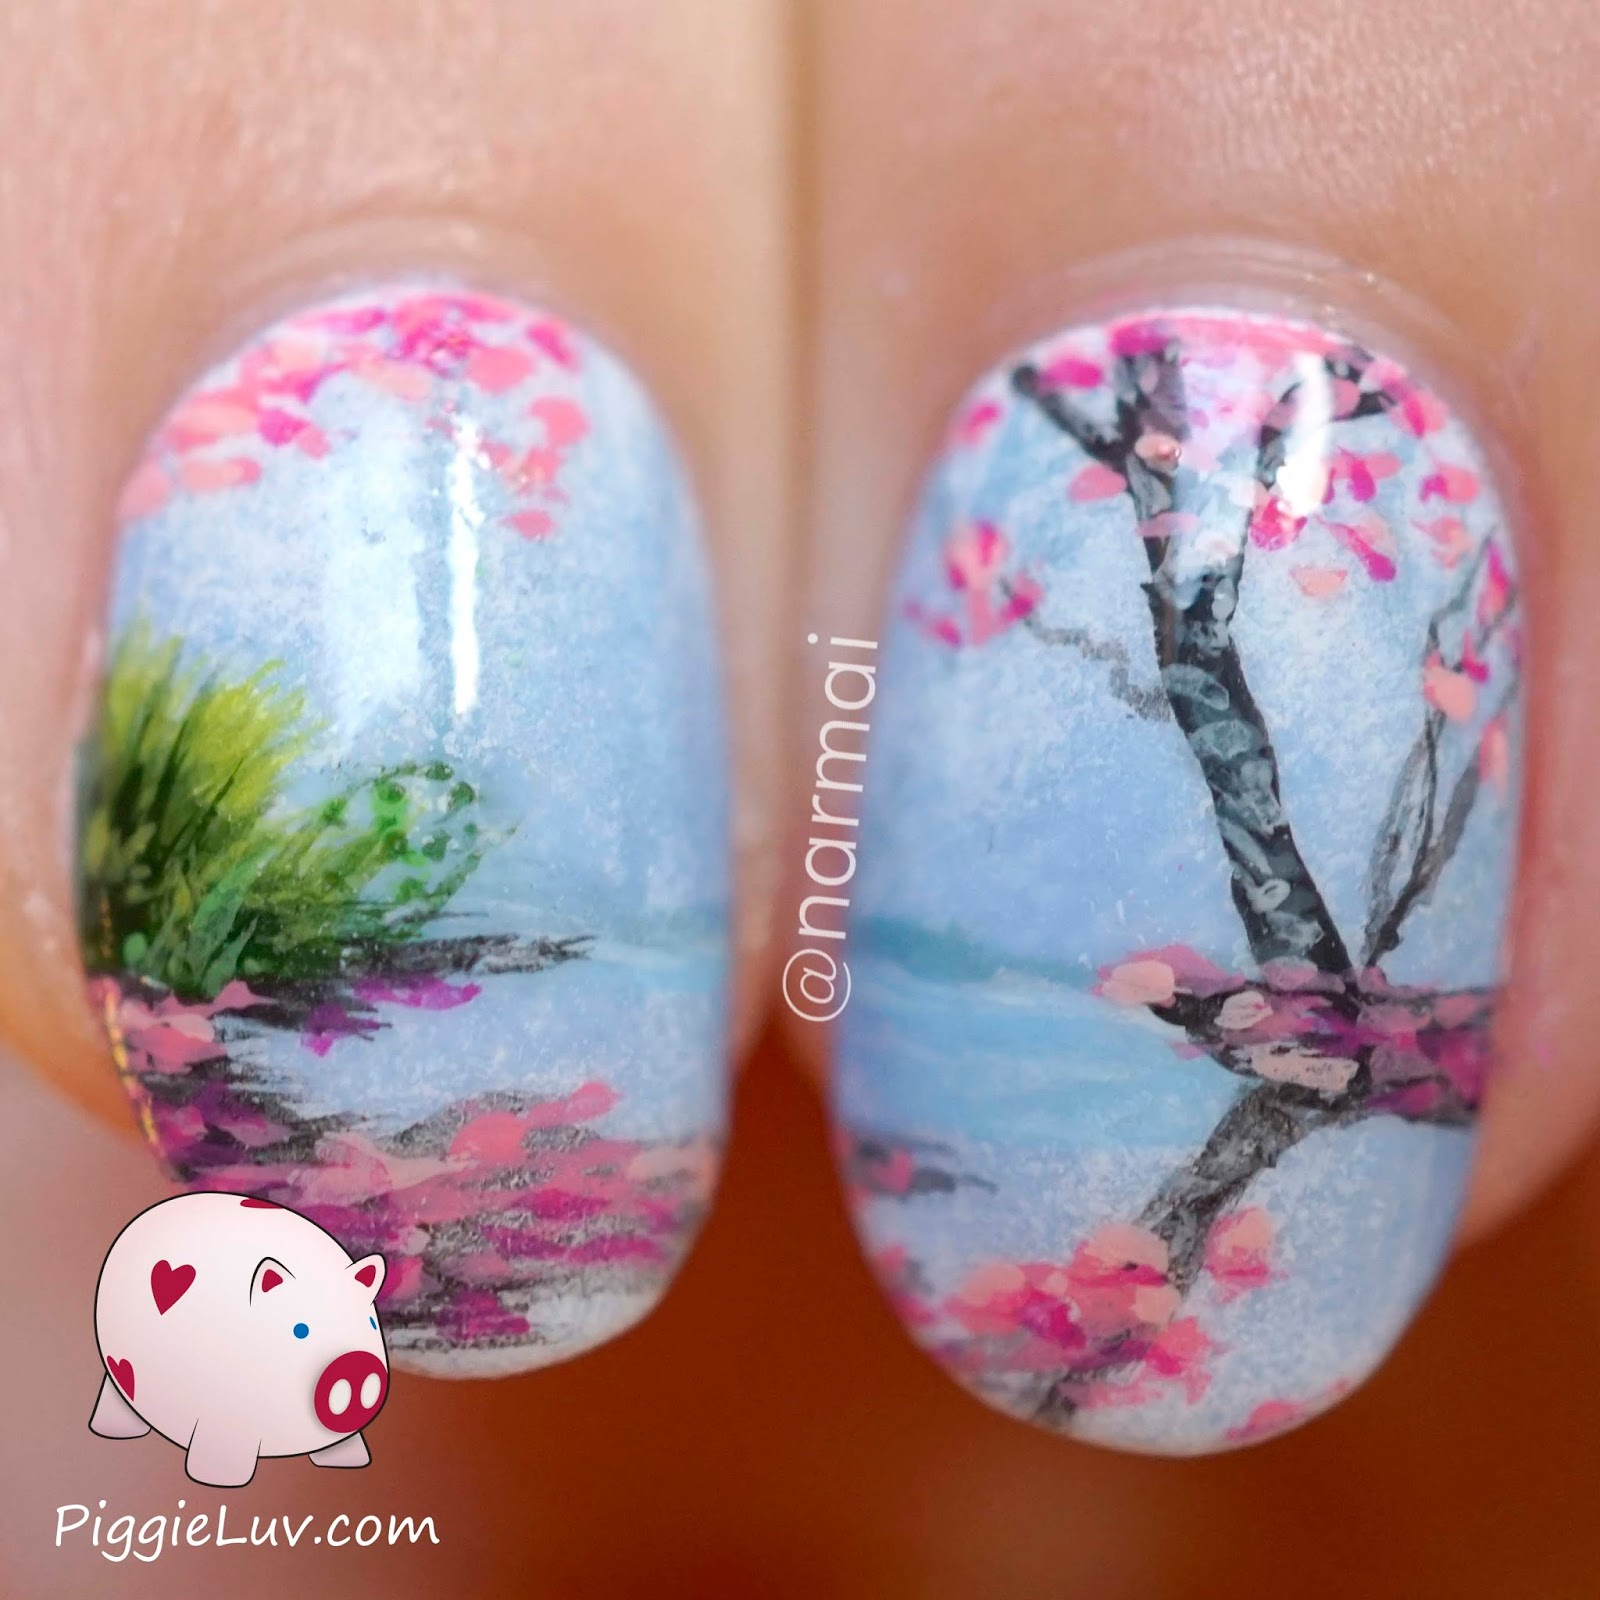 Piggieluv freehand blossoms landscape nail art freehand blossoms landscape nail art prinsesfo Image collections